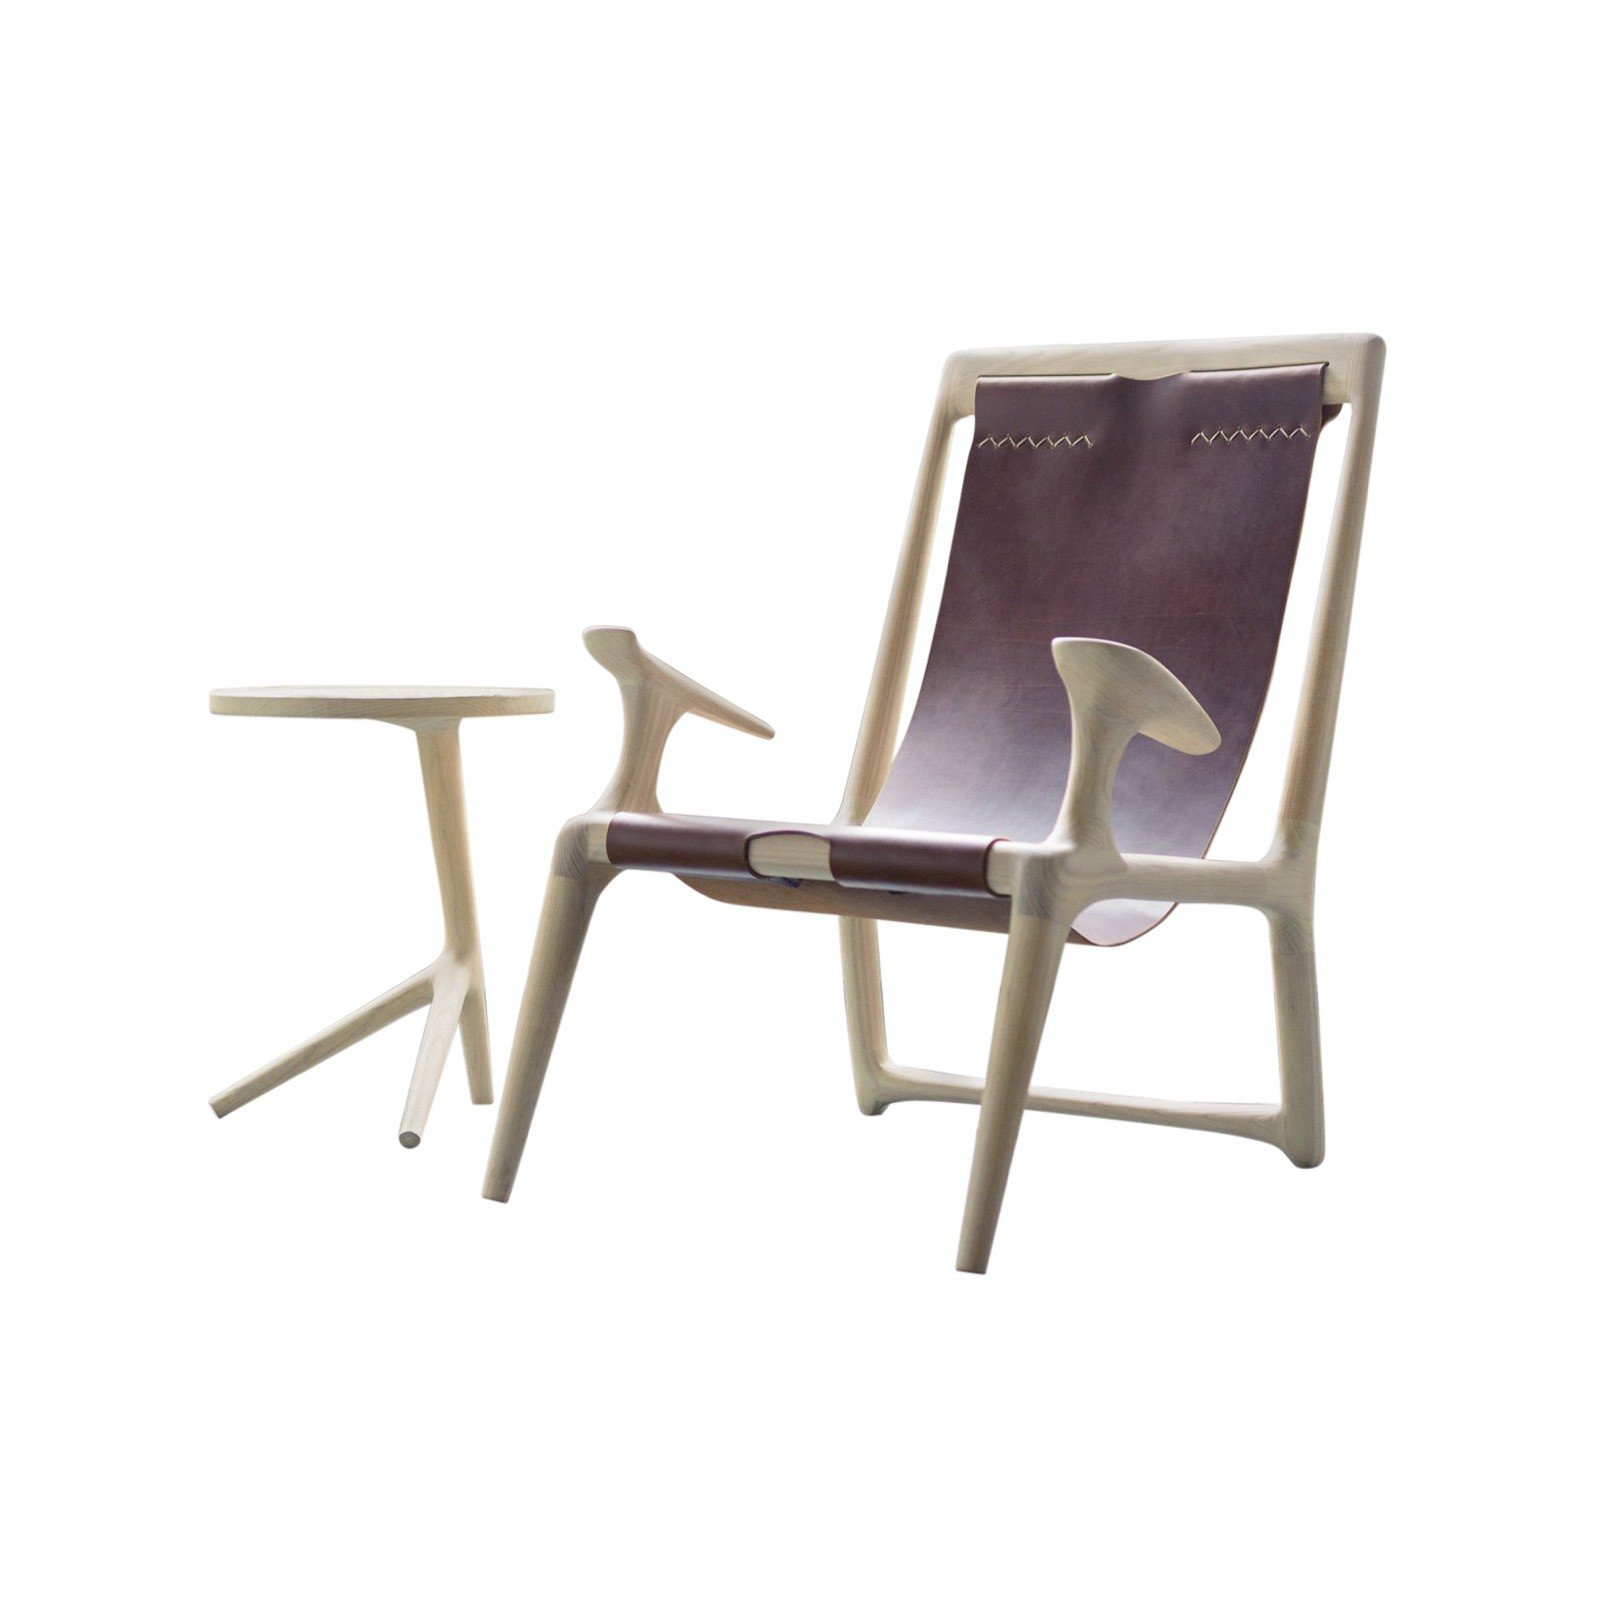 Fernweh Woodworking White Ash Leather Sling Chair By